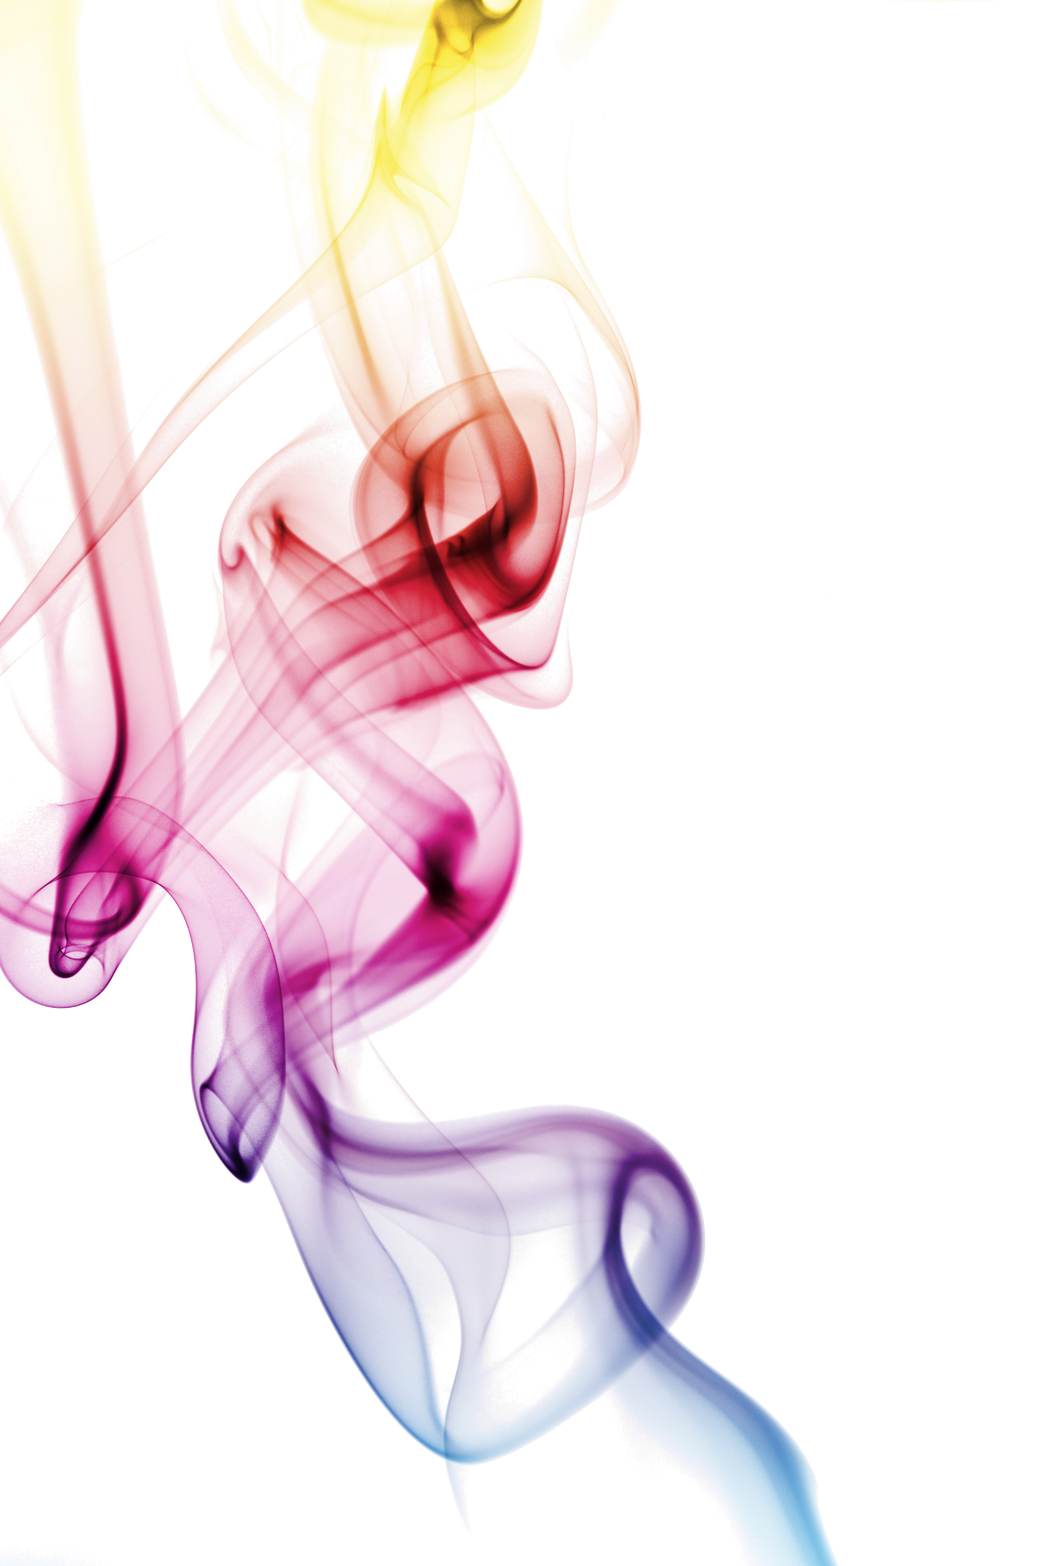 Transparent smoke png. Colorful image best stock